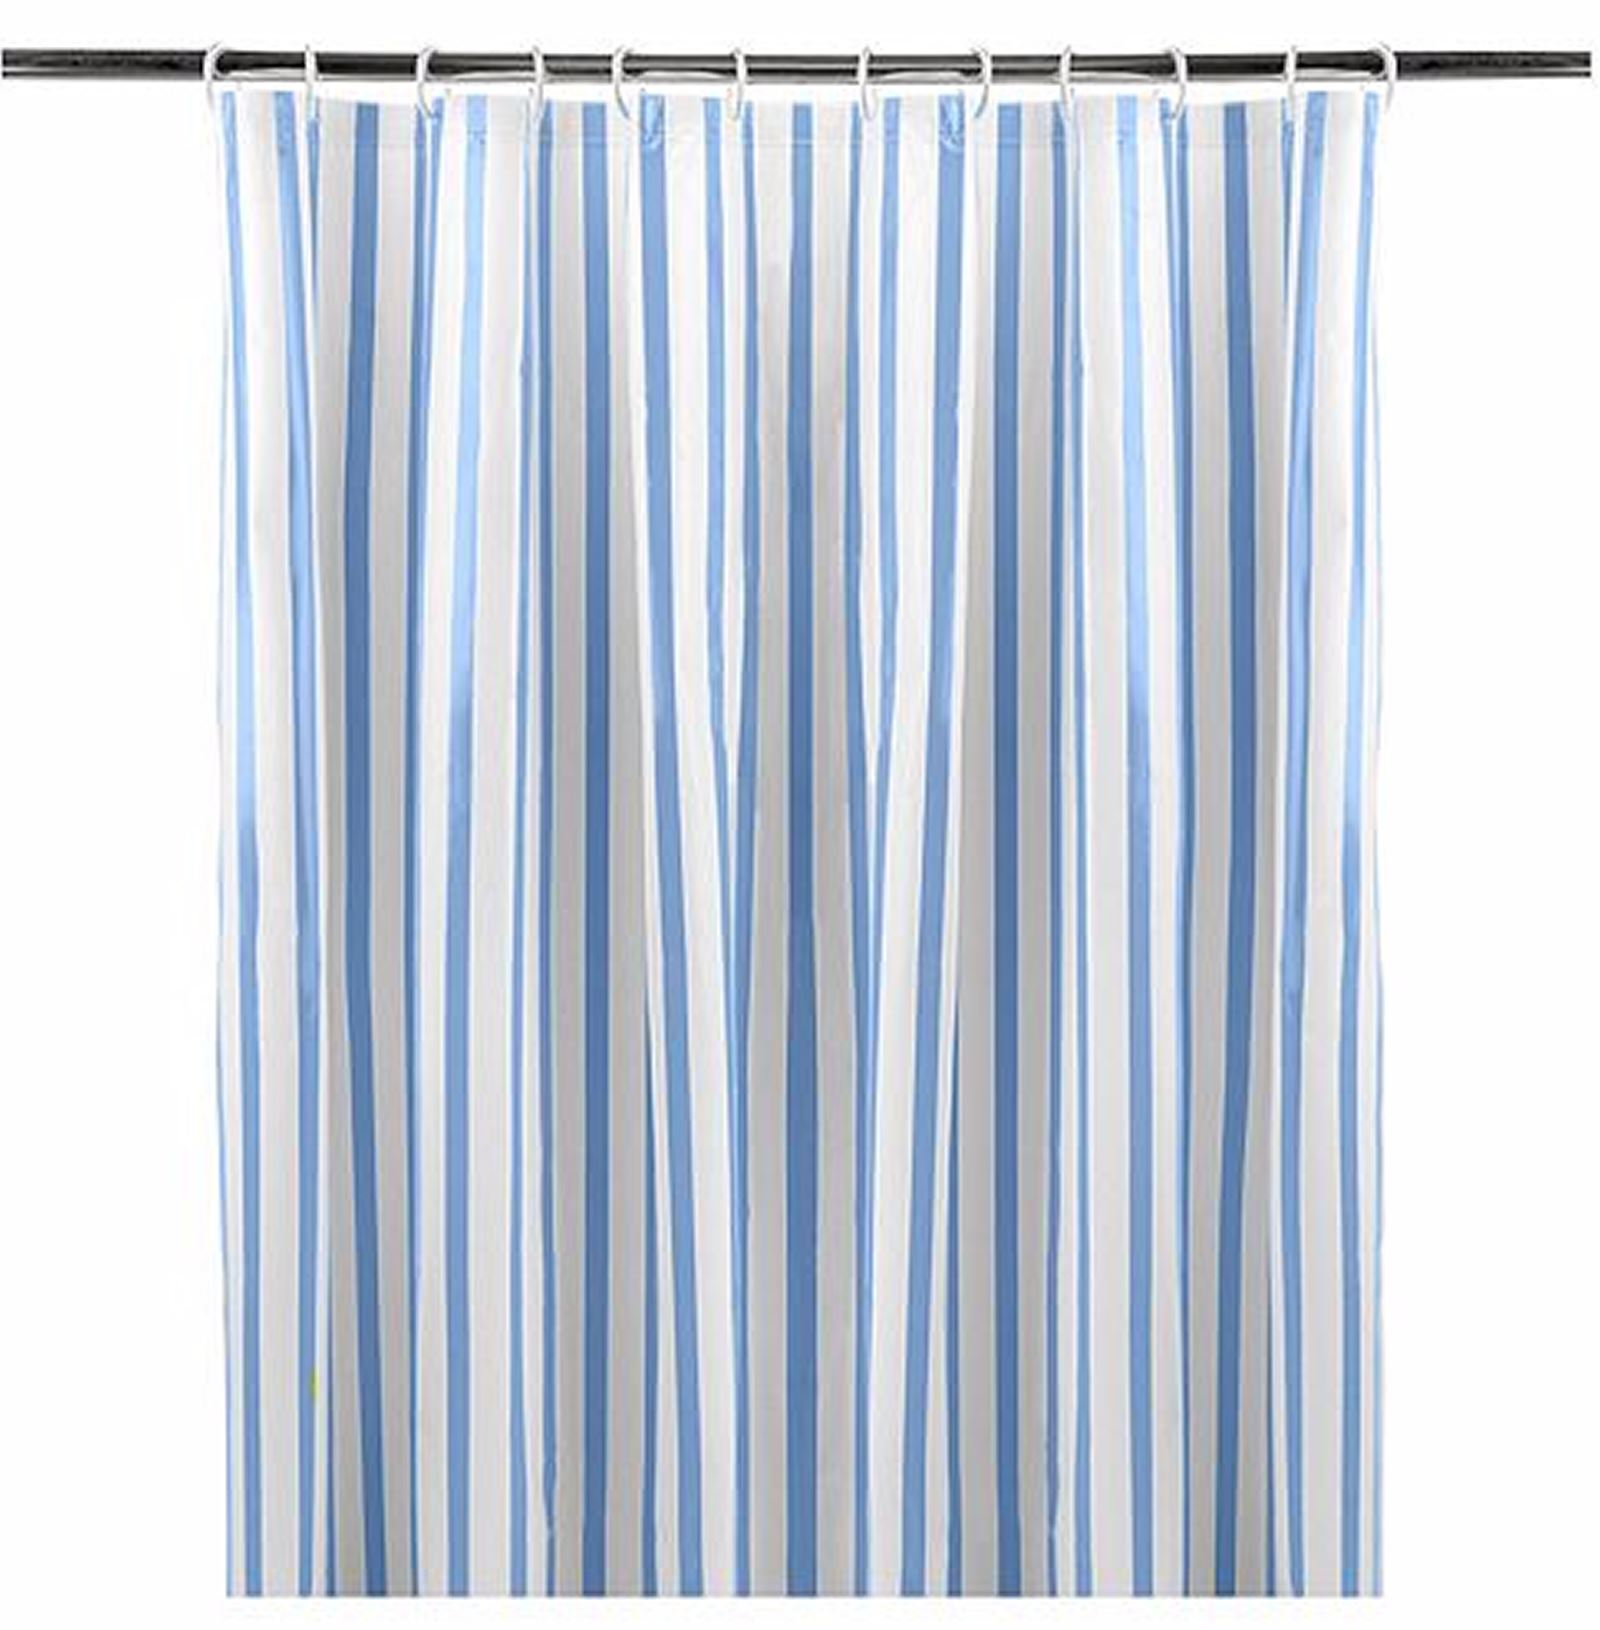 Details About Modern Blue And White Striped Shower Curtains Eyelet Ring Top 180x180cm